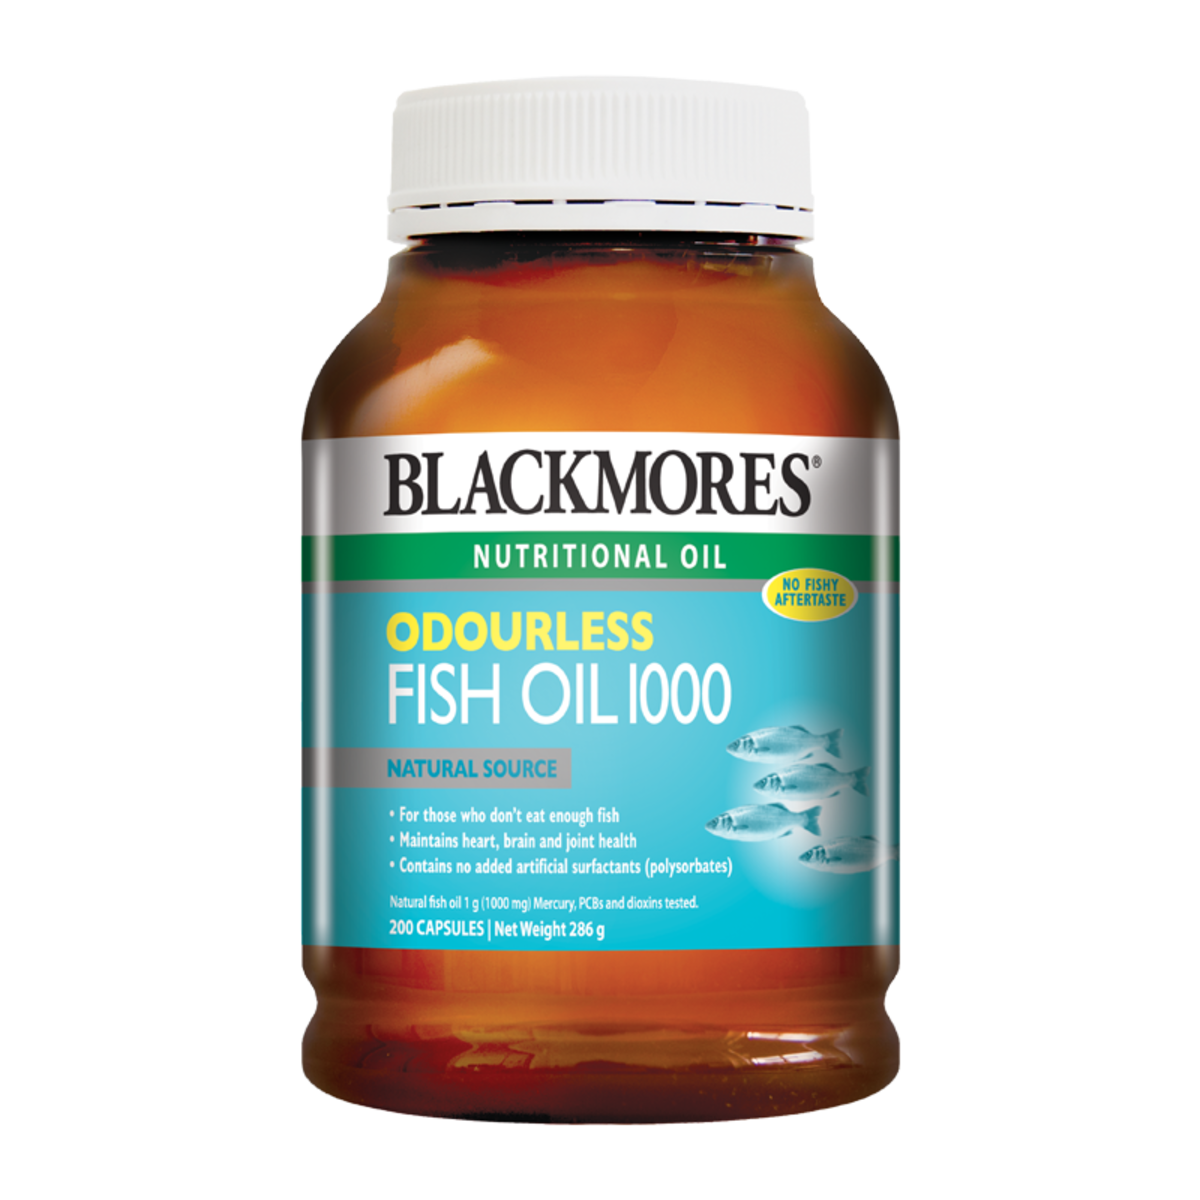 Odourless Fish Oil 1000 200 Capsules